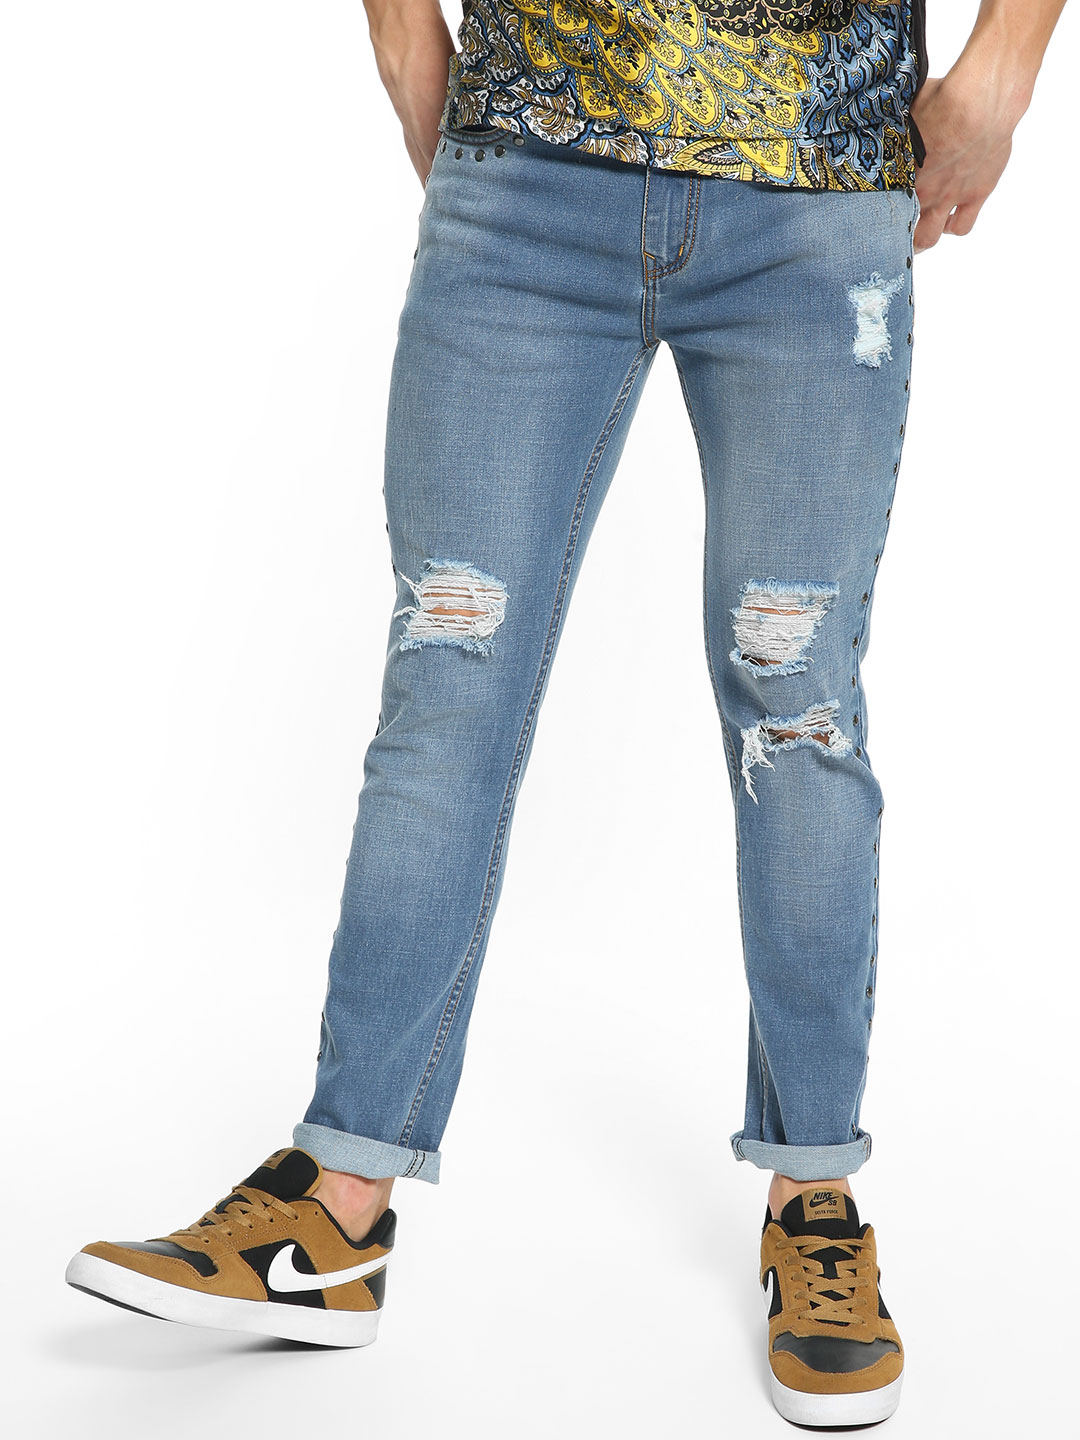 K Denim Blue KOOVS Light Wash Studded Skinny Jeans 1